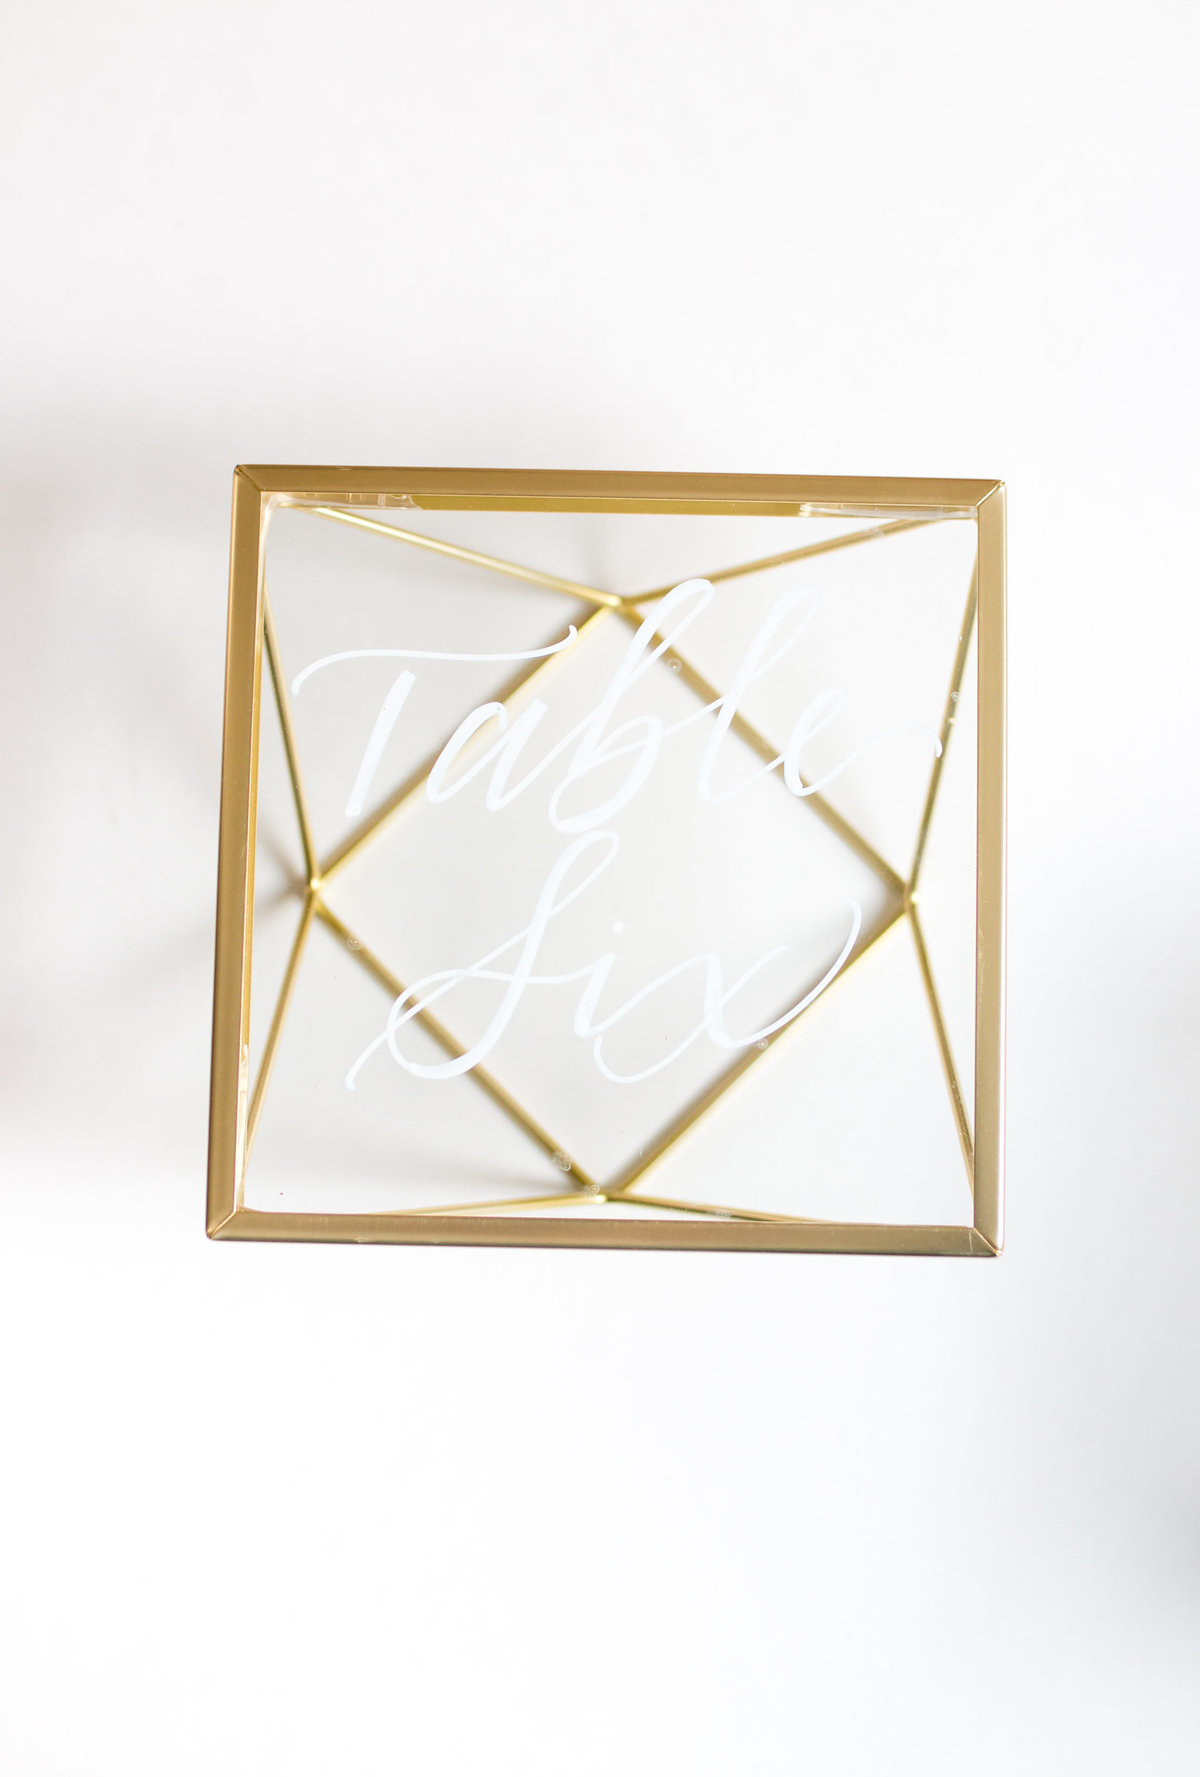 Geometric glass table number with white calligraphy for weddings or events rental through Hue + FA Rentals